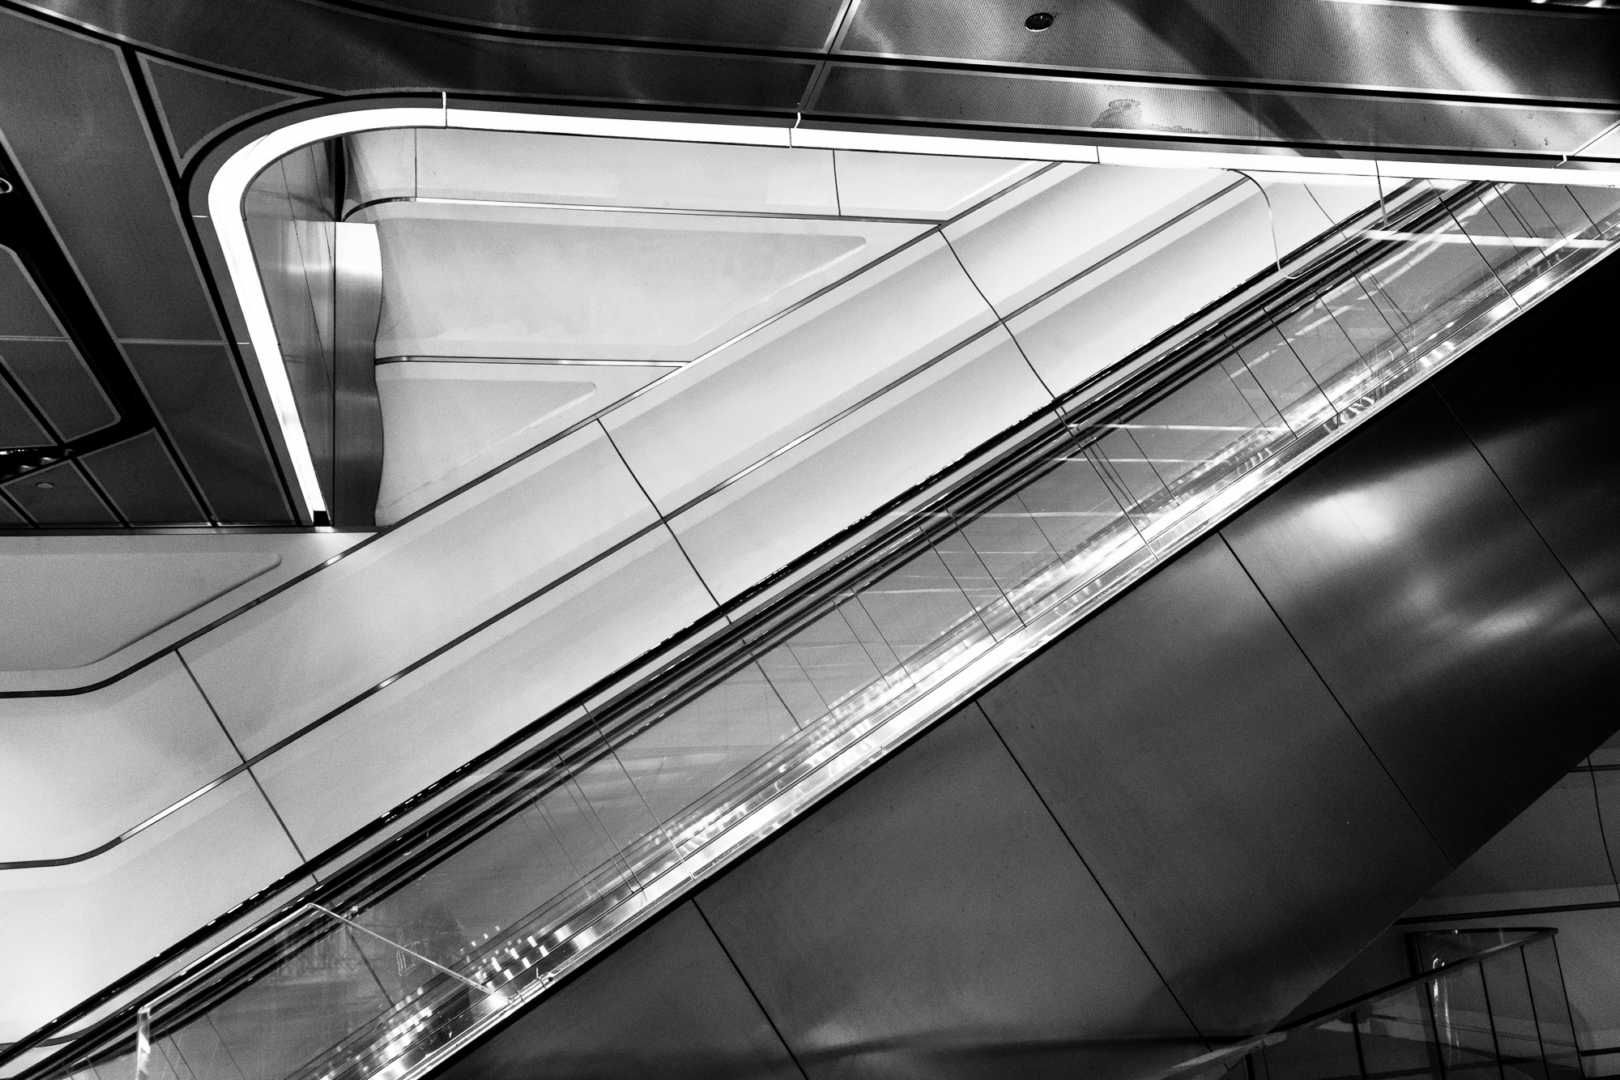 architectural photo of an escalator